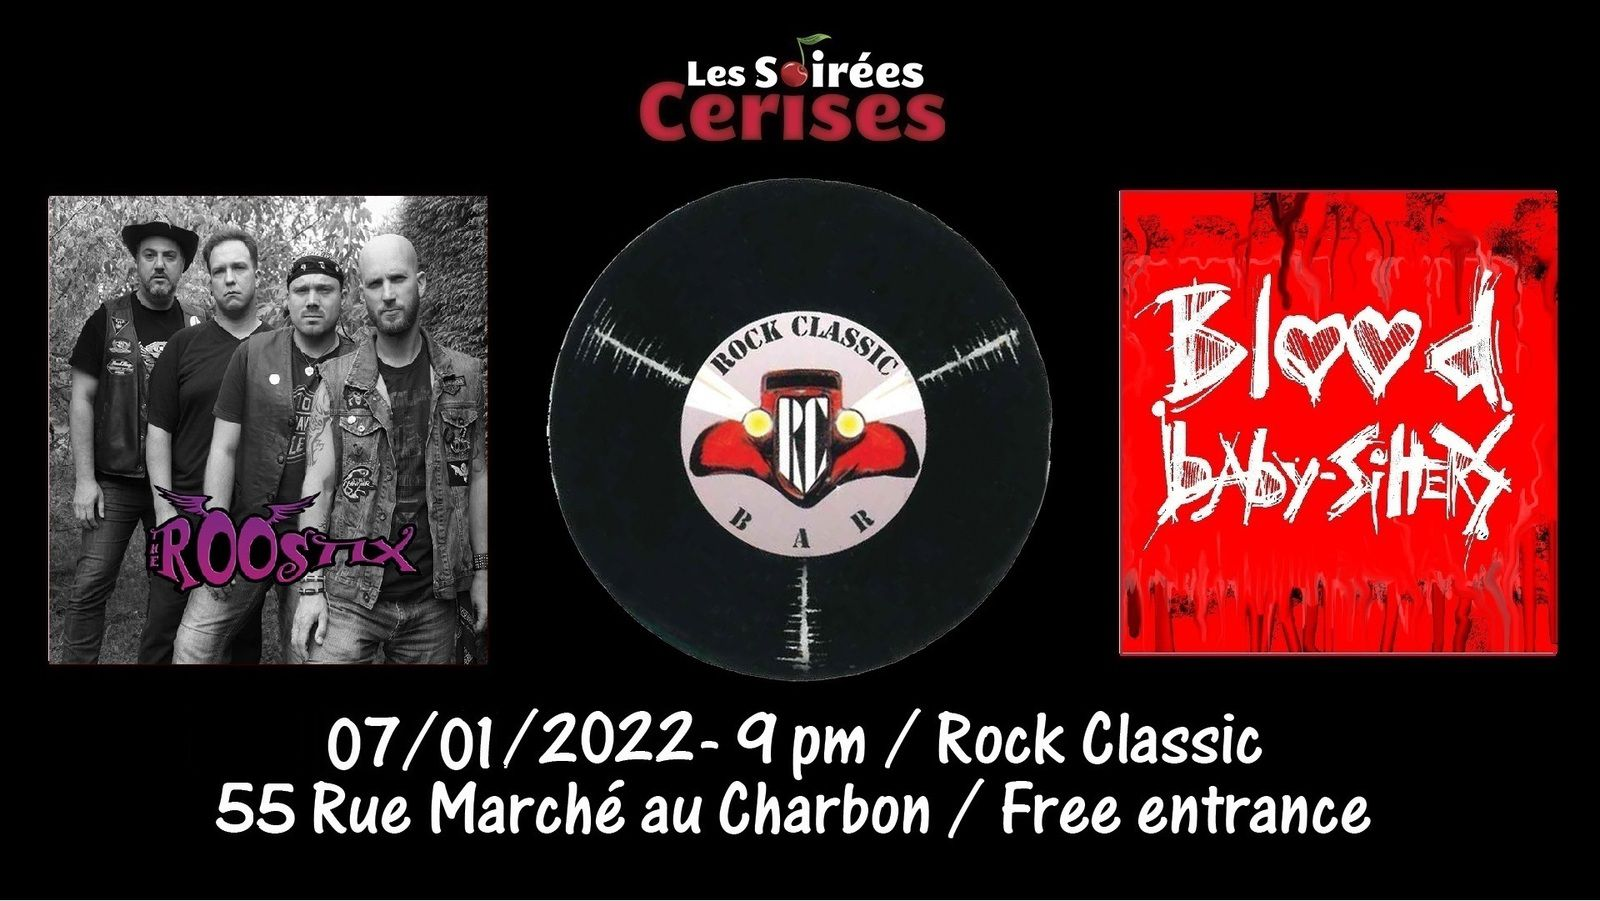 🎵 The Roostix + Blood Baby Sitters @ Rock Classic - 07/01/2022